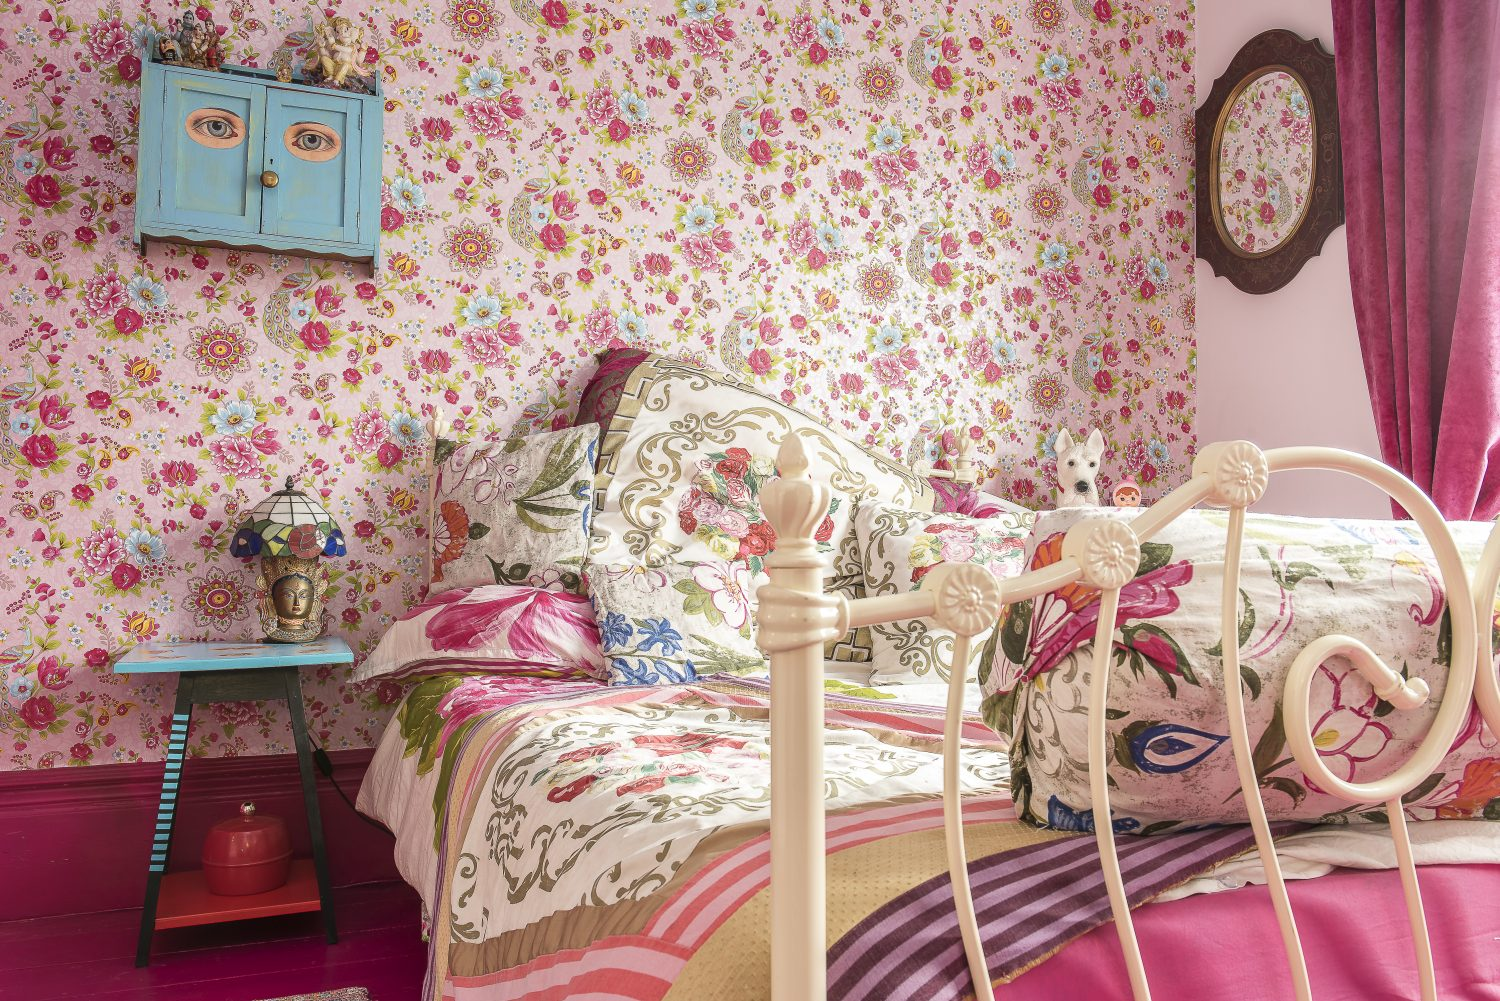 The wallpaper in the guest bedroom is by Pip Studio.